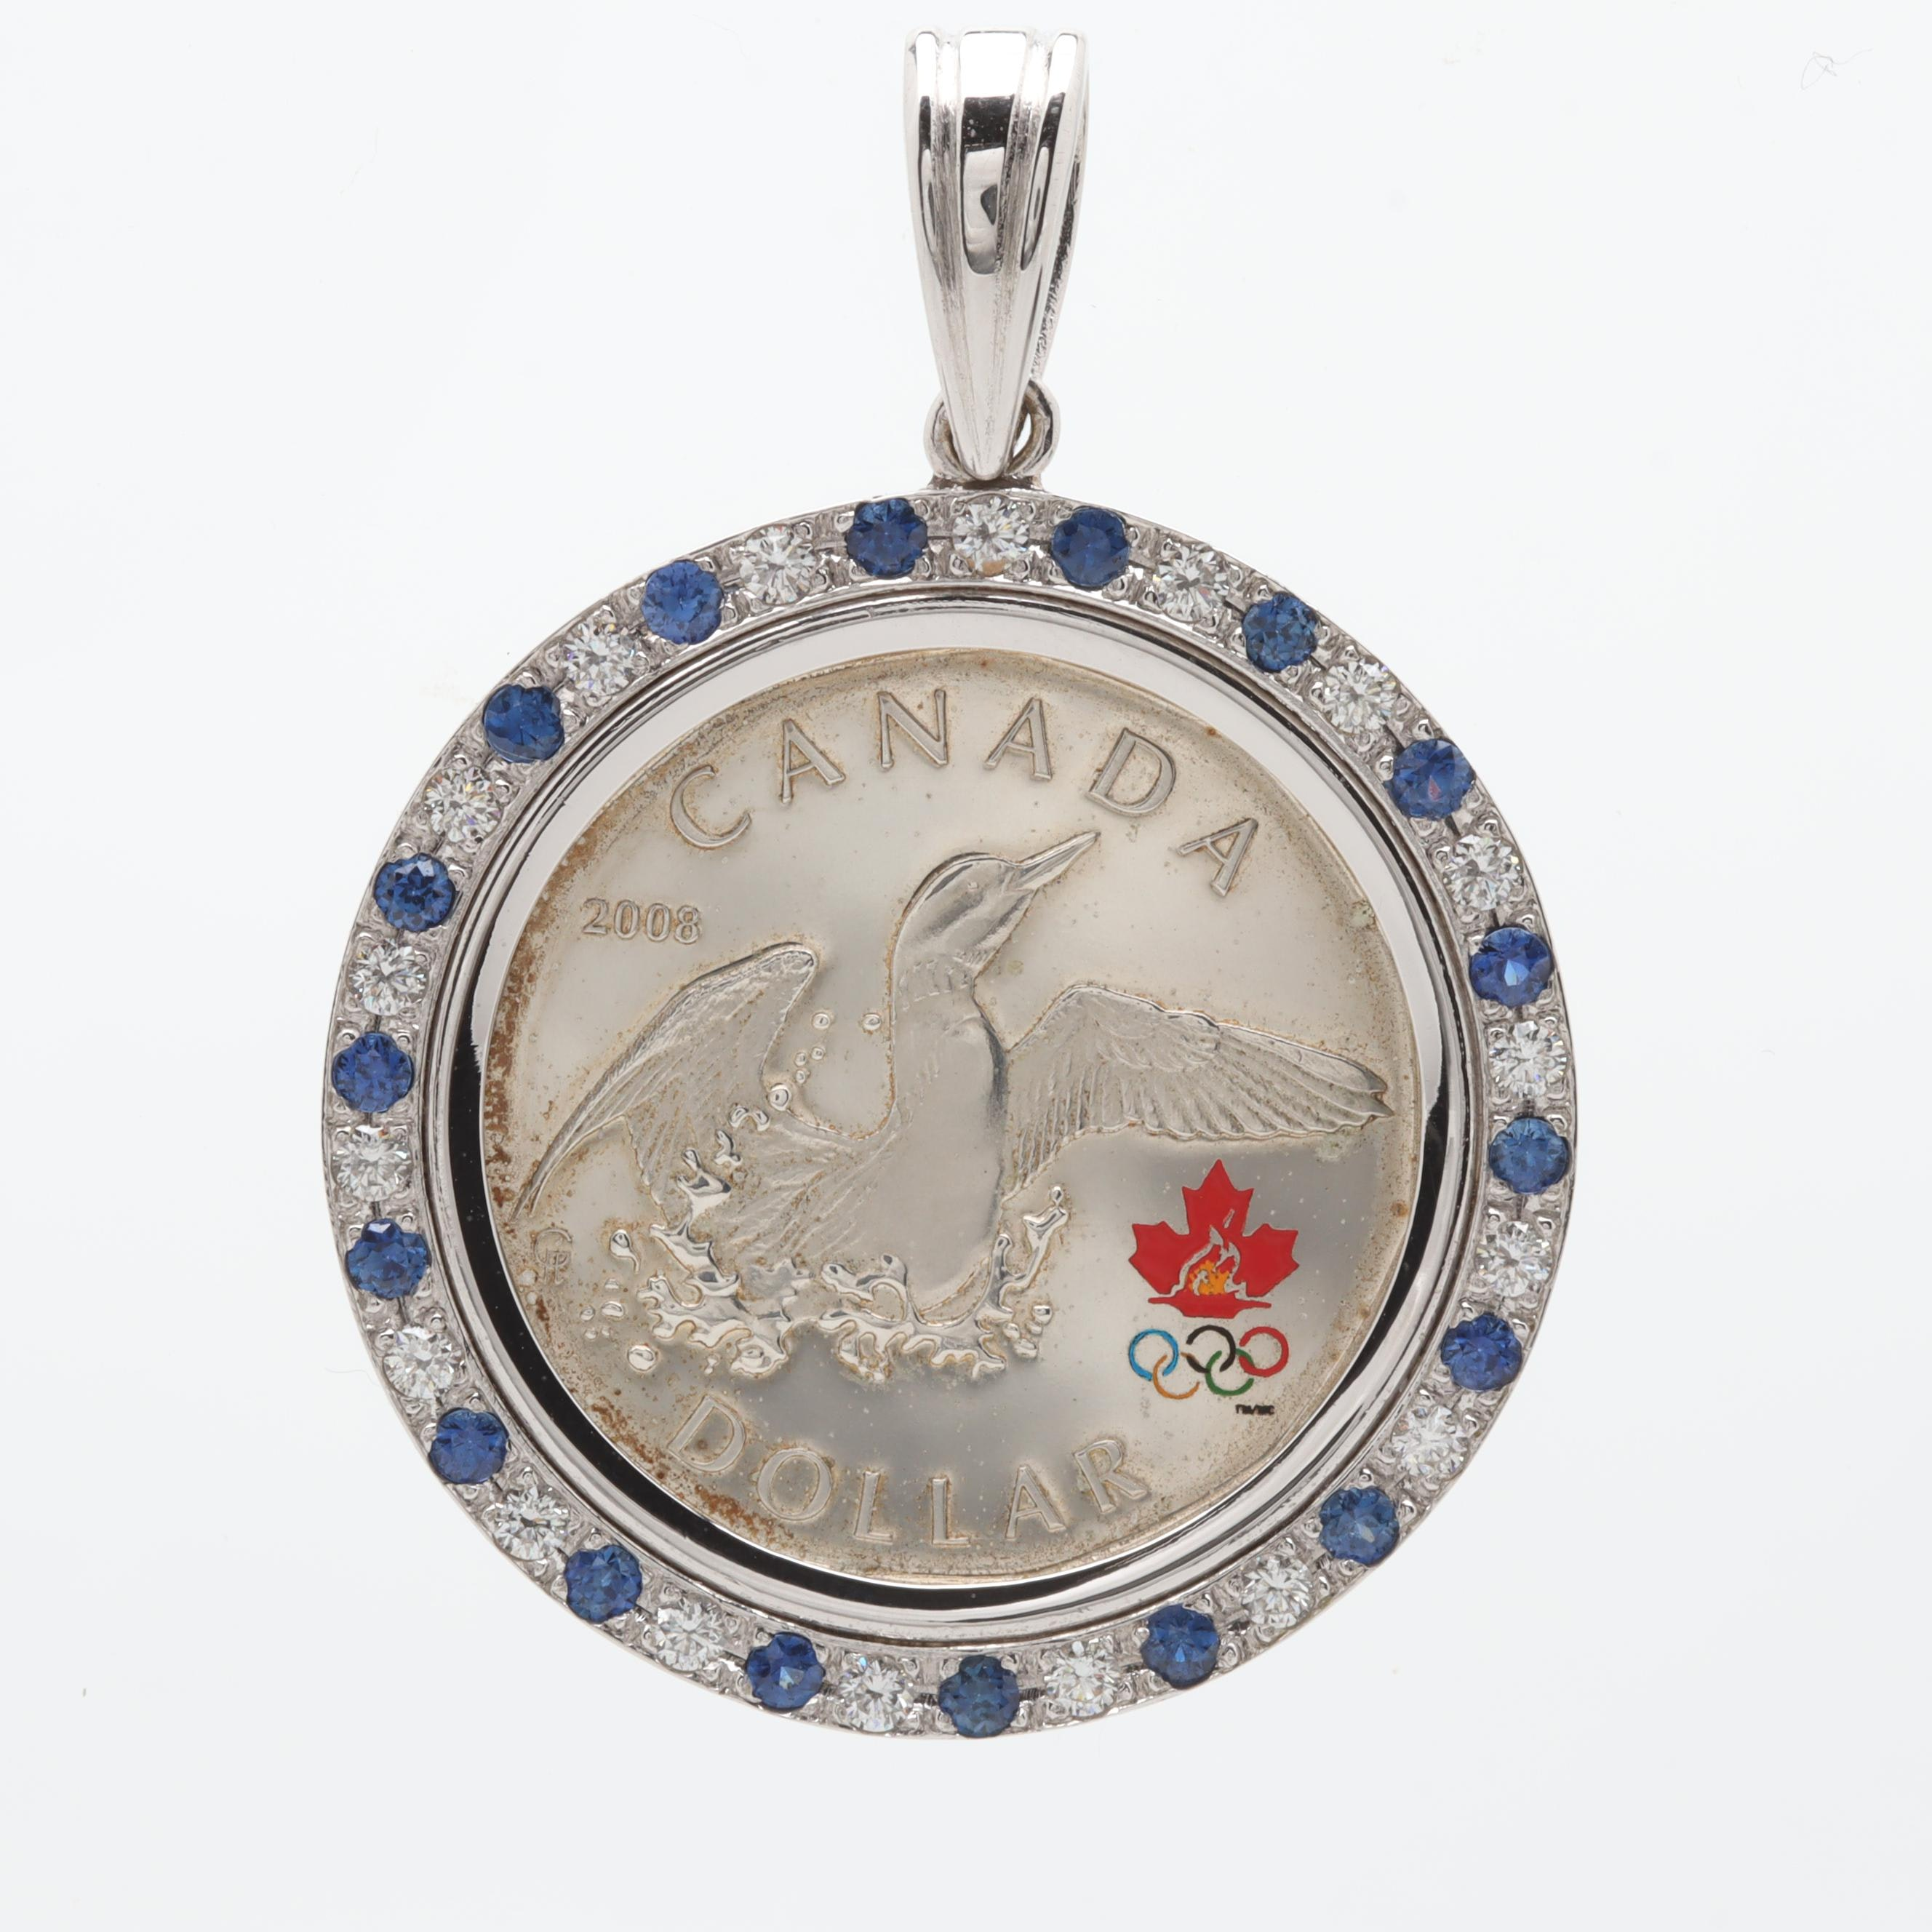 14K White Gold Diamond and Sapphire Pendant and Canadian Sterling Olympic Dollar